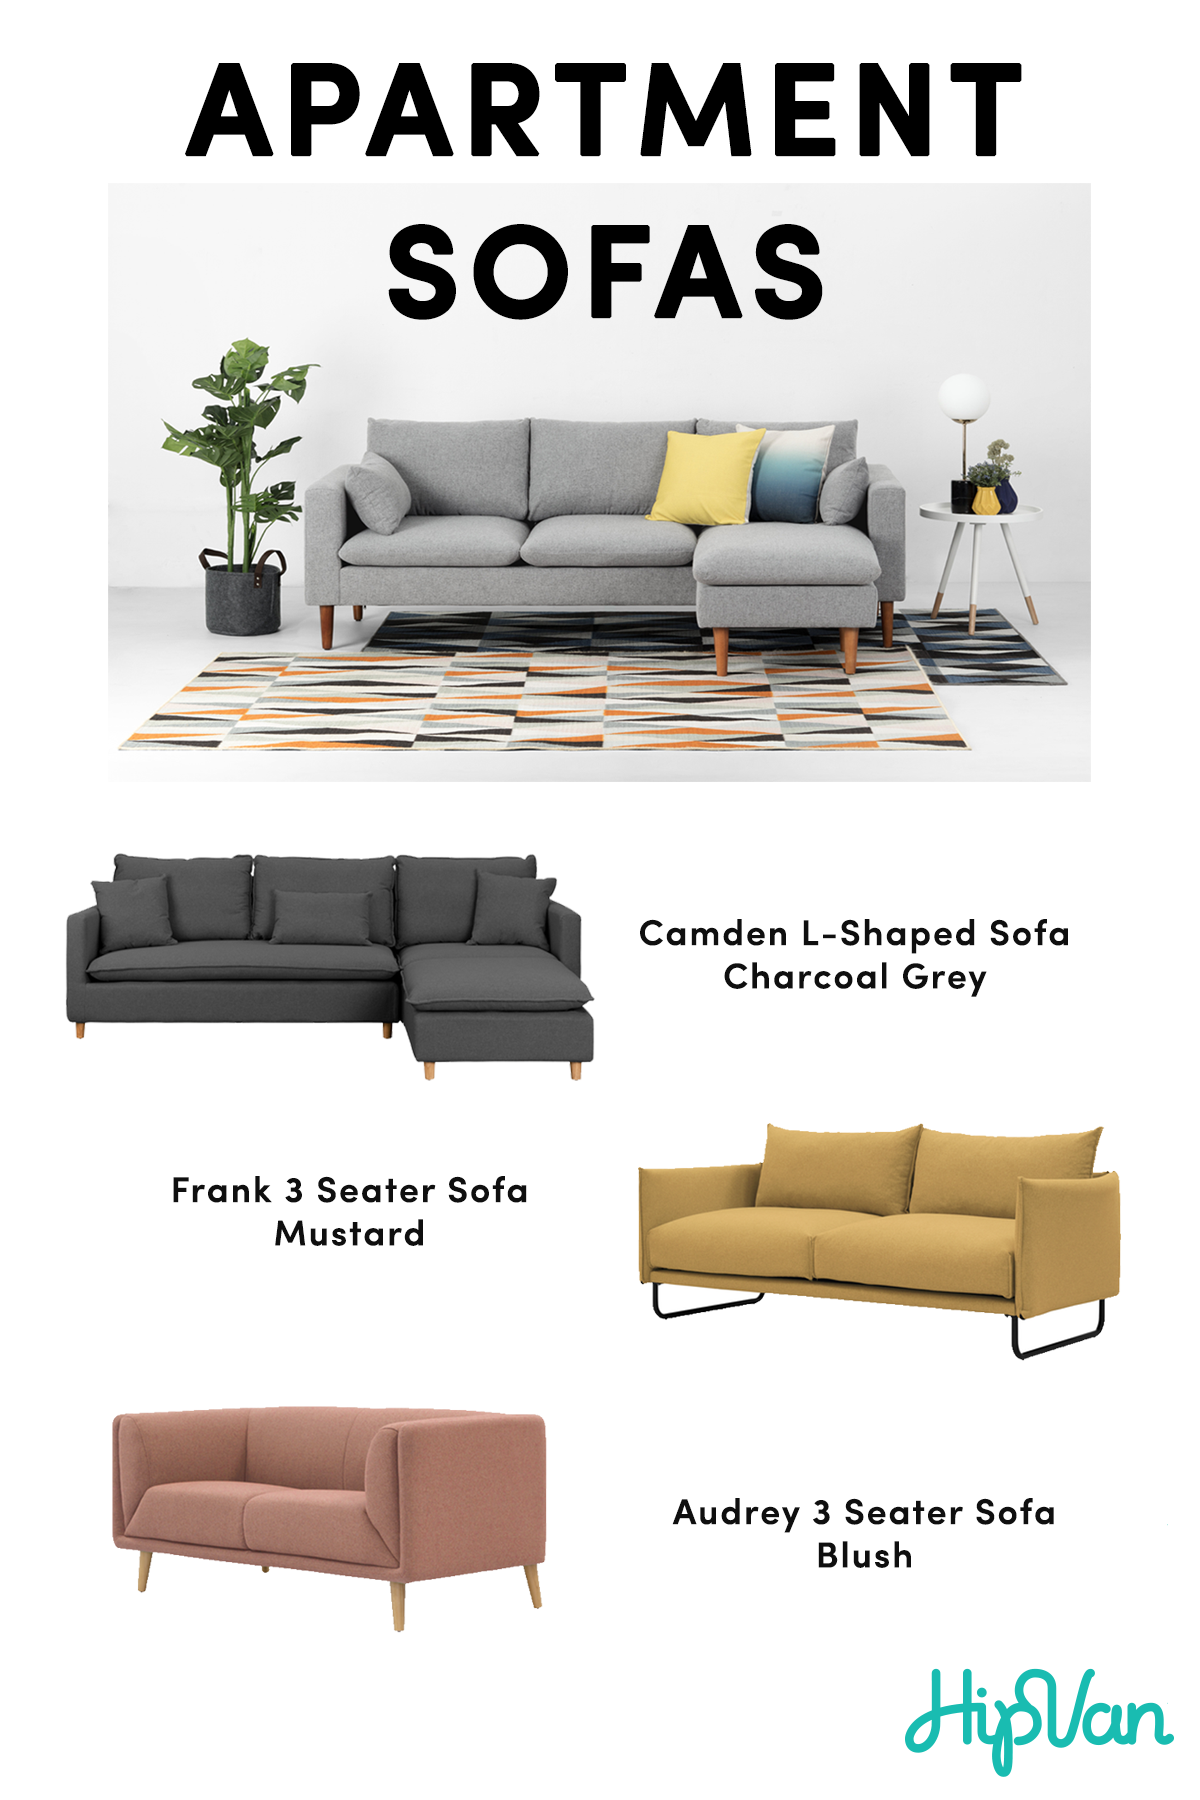 Our Stylish Apartment Sofas Are The